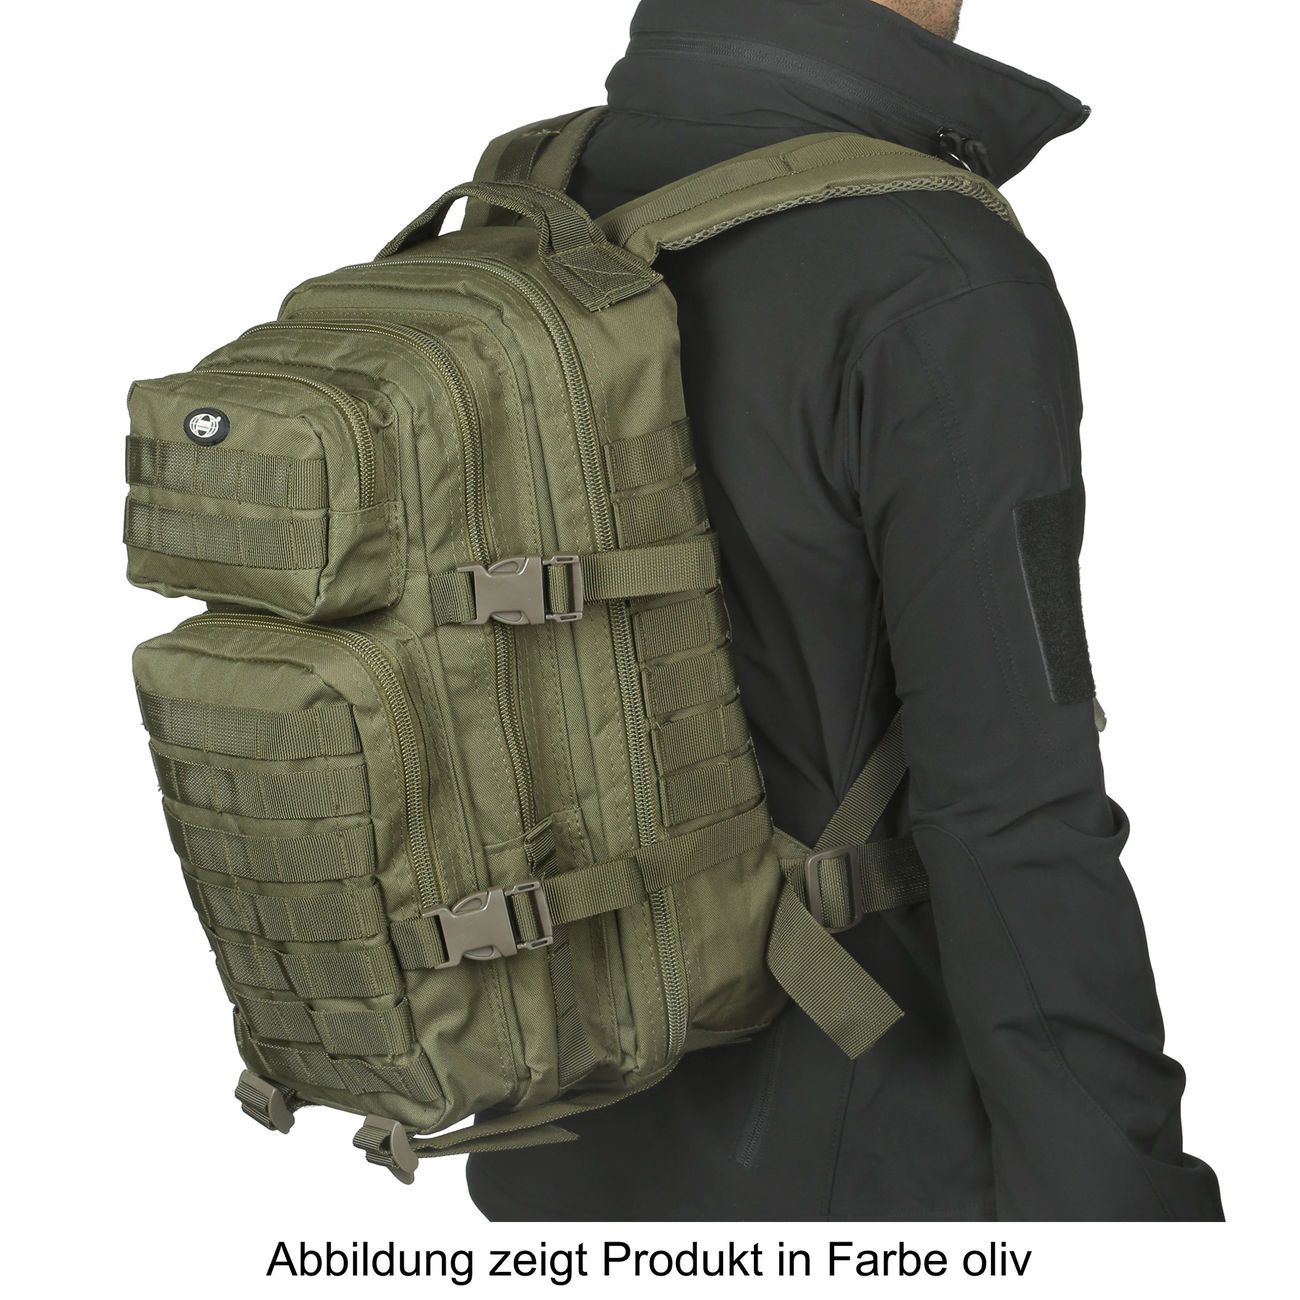 MFH Rucksack Assault I operation camo 5